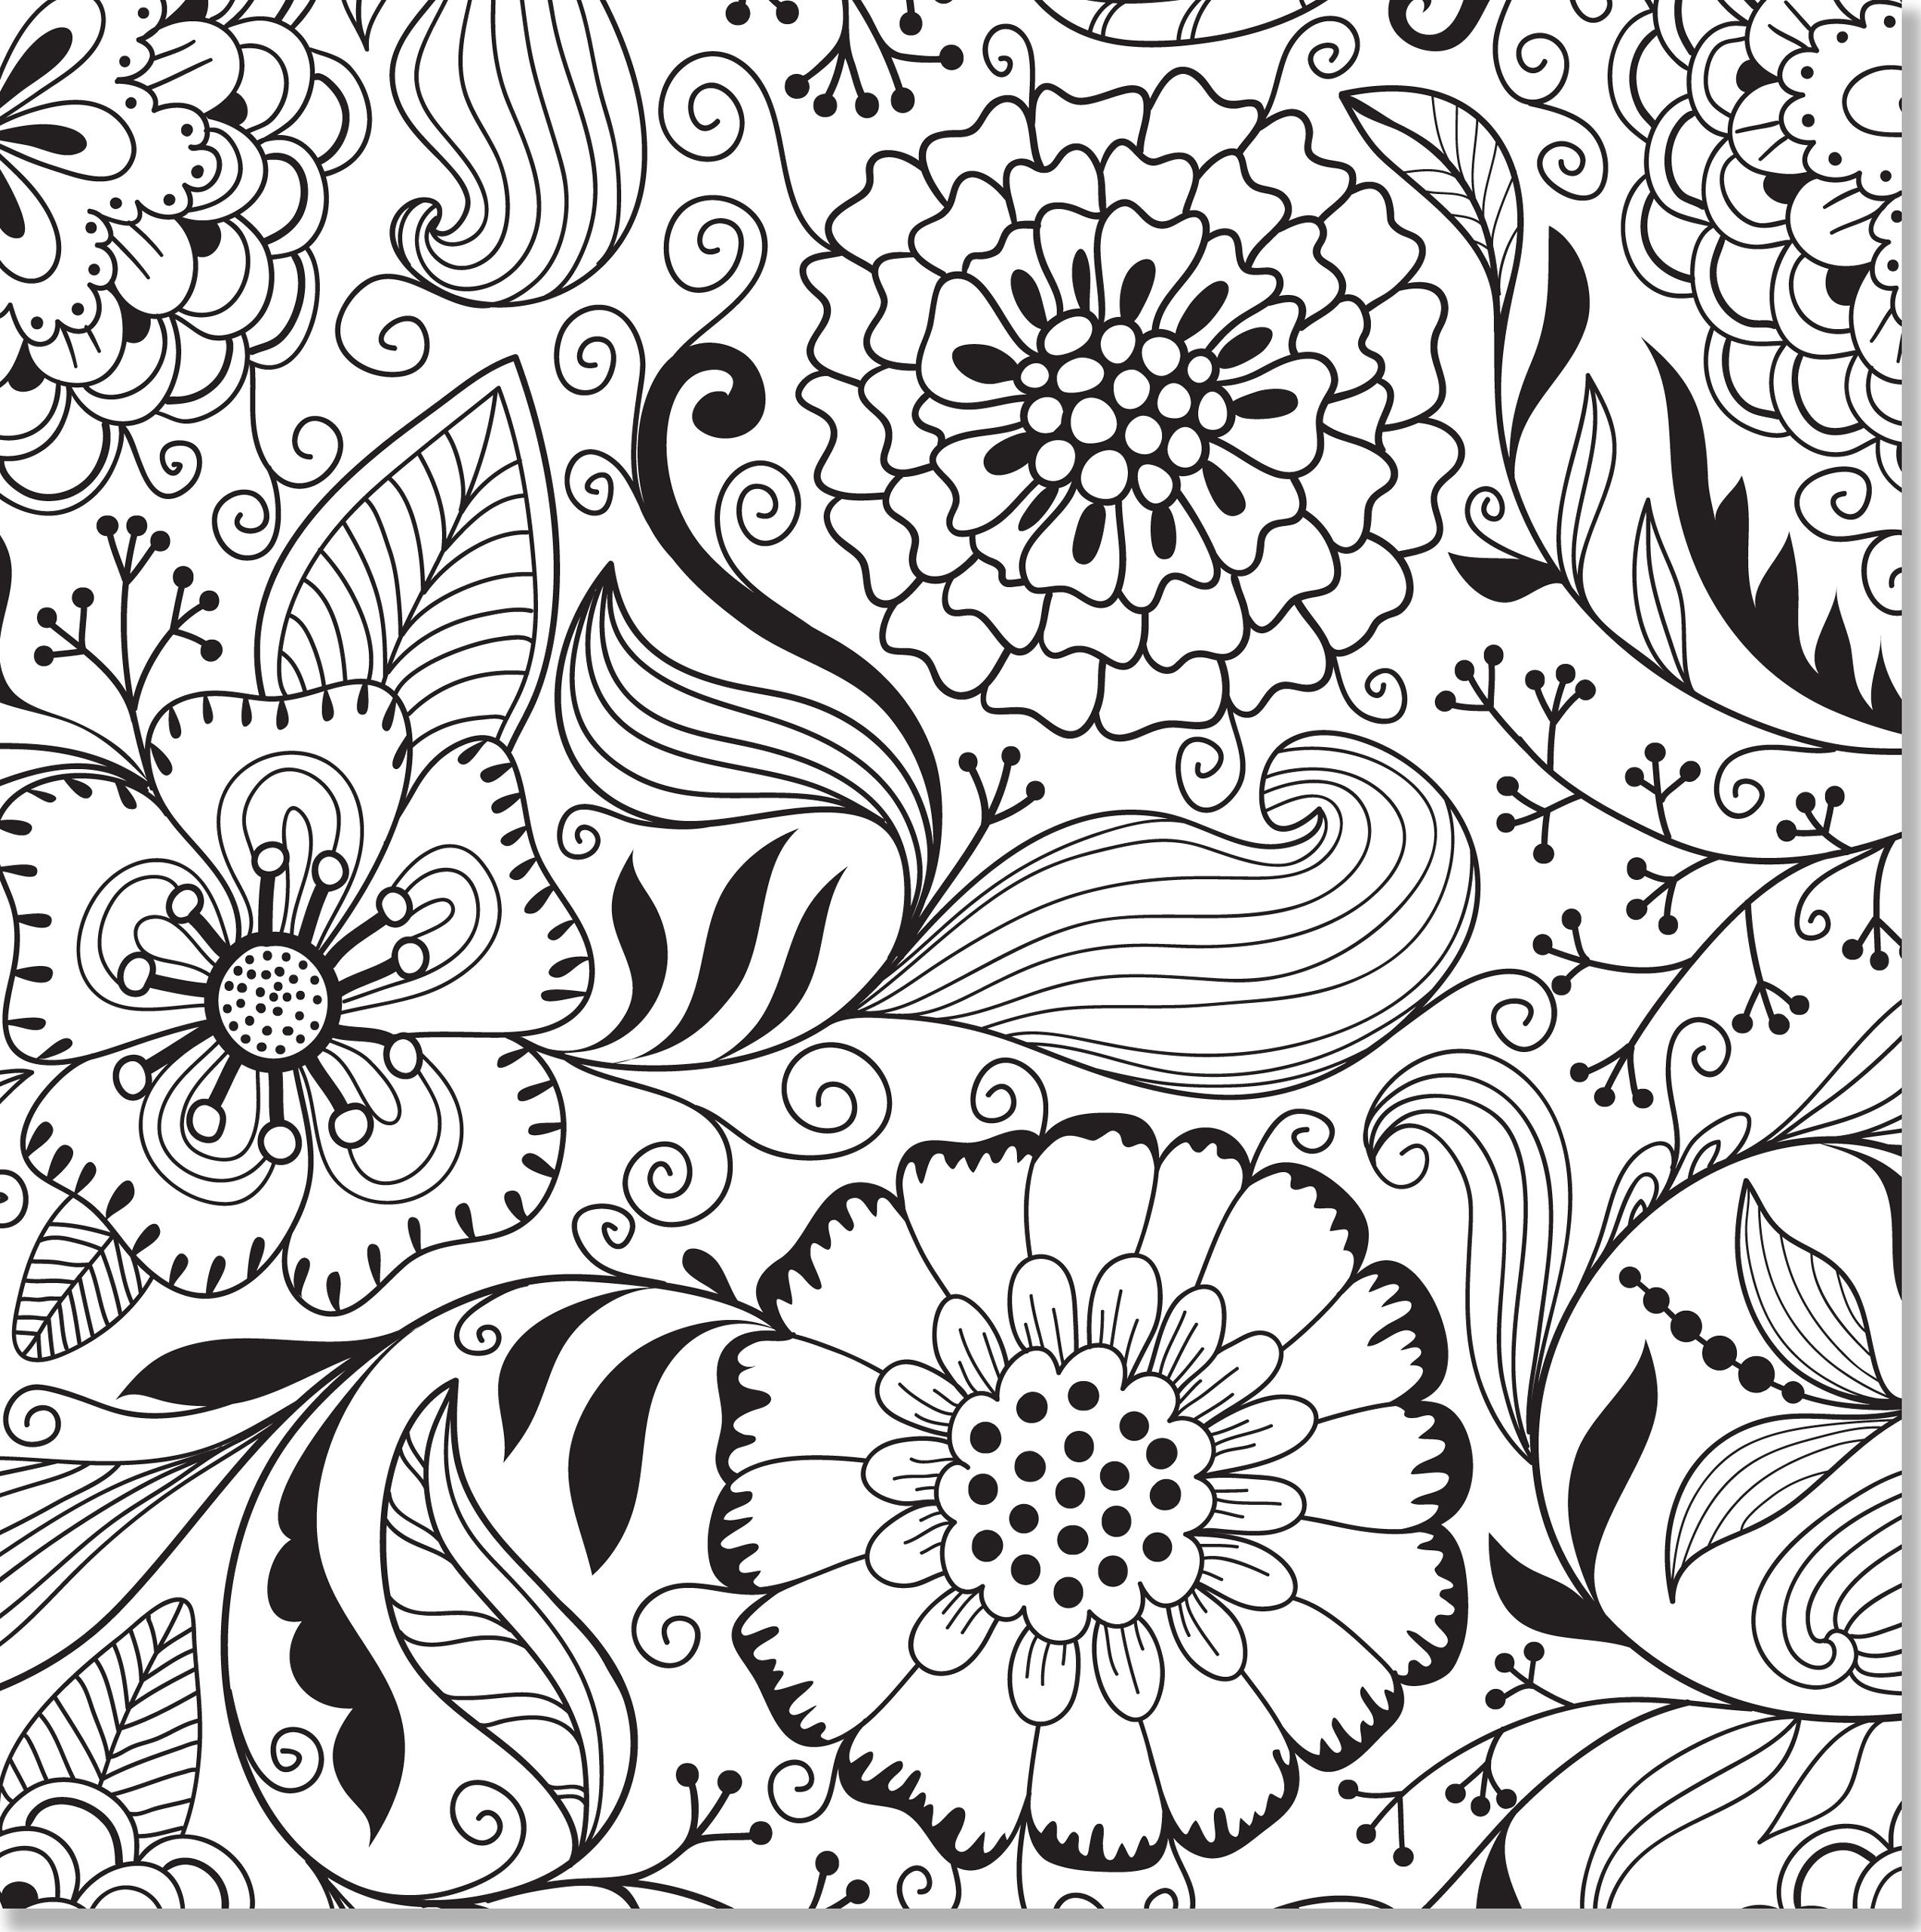 Awesome Free Printable Coloring Book Pages For Adults | Coloring Pages - Free Printable Coloring Designs For Adults